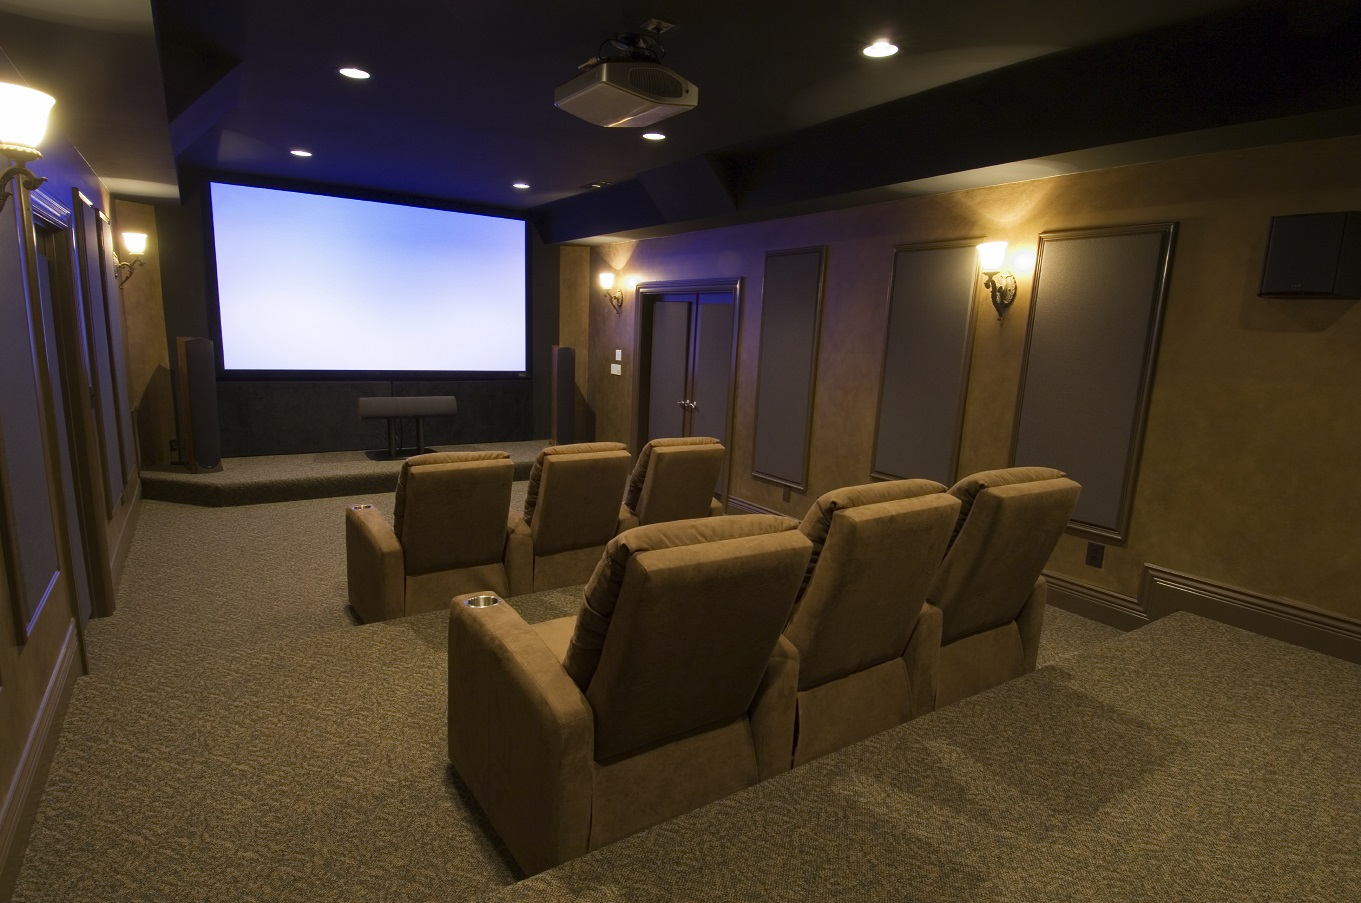 Home Theater Sale Frisco  Media Rooms Frisco  Home. Renaissance Decor. Decorative Bridge. Barnyard Birthday Decorations. Home Decorating App. Floor To Ceiling Room Dividers. Ebay Dining Room Chairs. Furnished Rooms In Manhattan. Decorating A Living Room